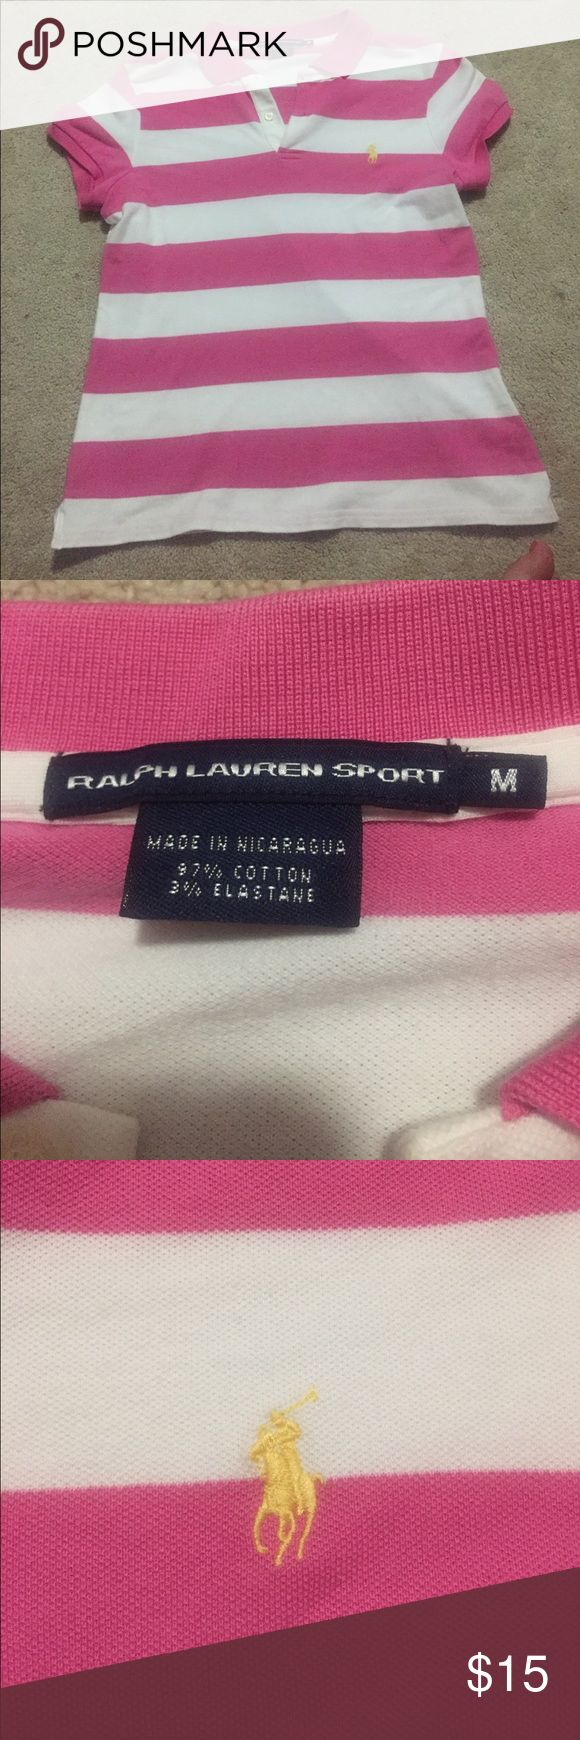 Polo shirt! Never worn polo shirt! Cute pink and white stripes! Polo by Ralph Lauren Tops Button Down Shirts